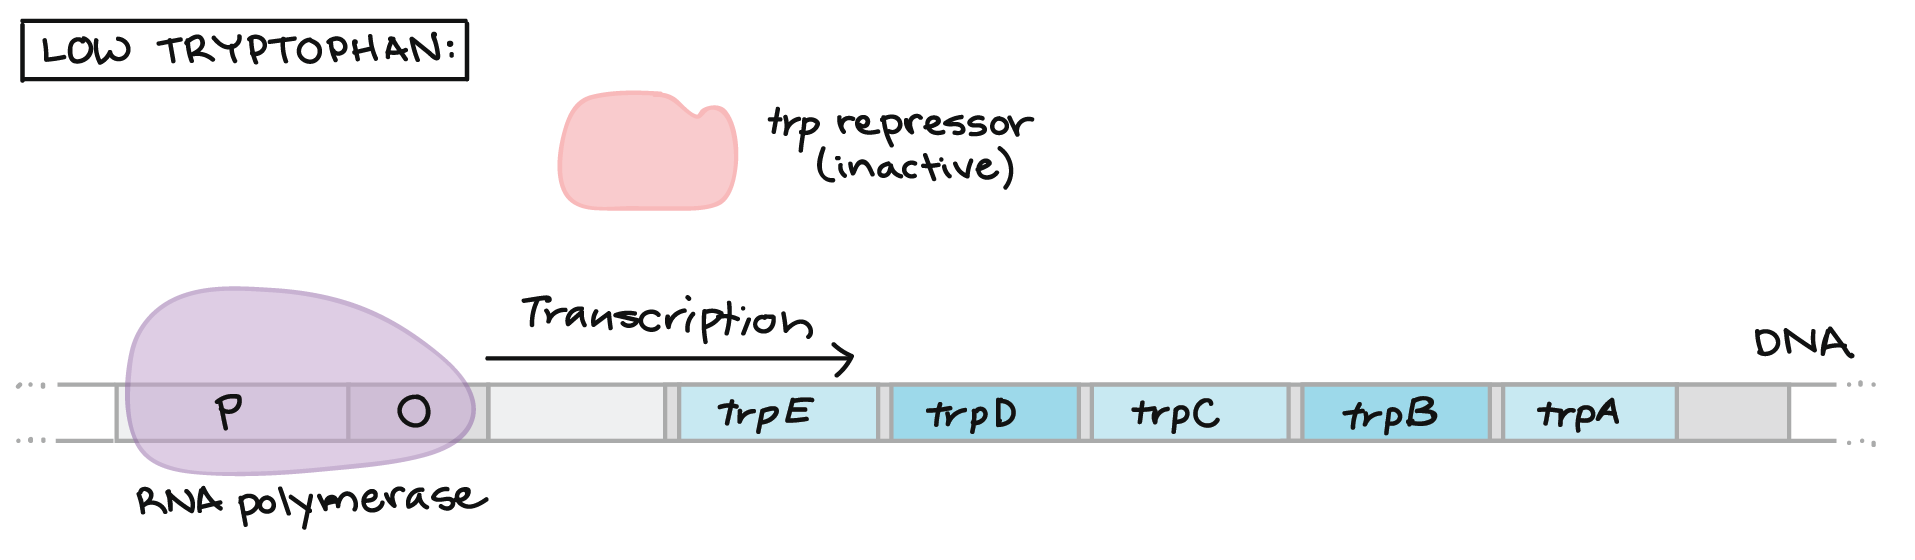 eb7b6802bd70 Low tryptophan   trp  repressor is not bound to tryptophan (since there is  no tryptophan